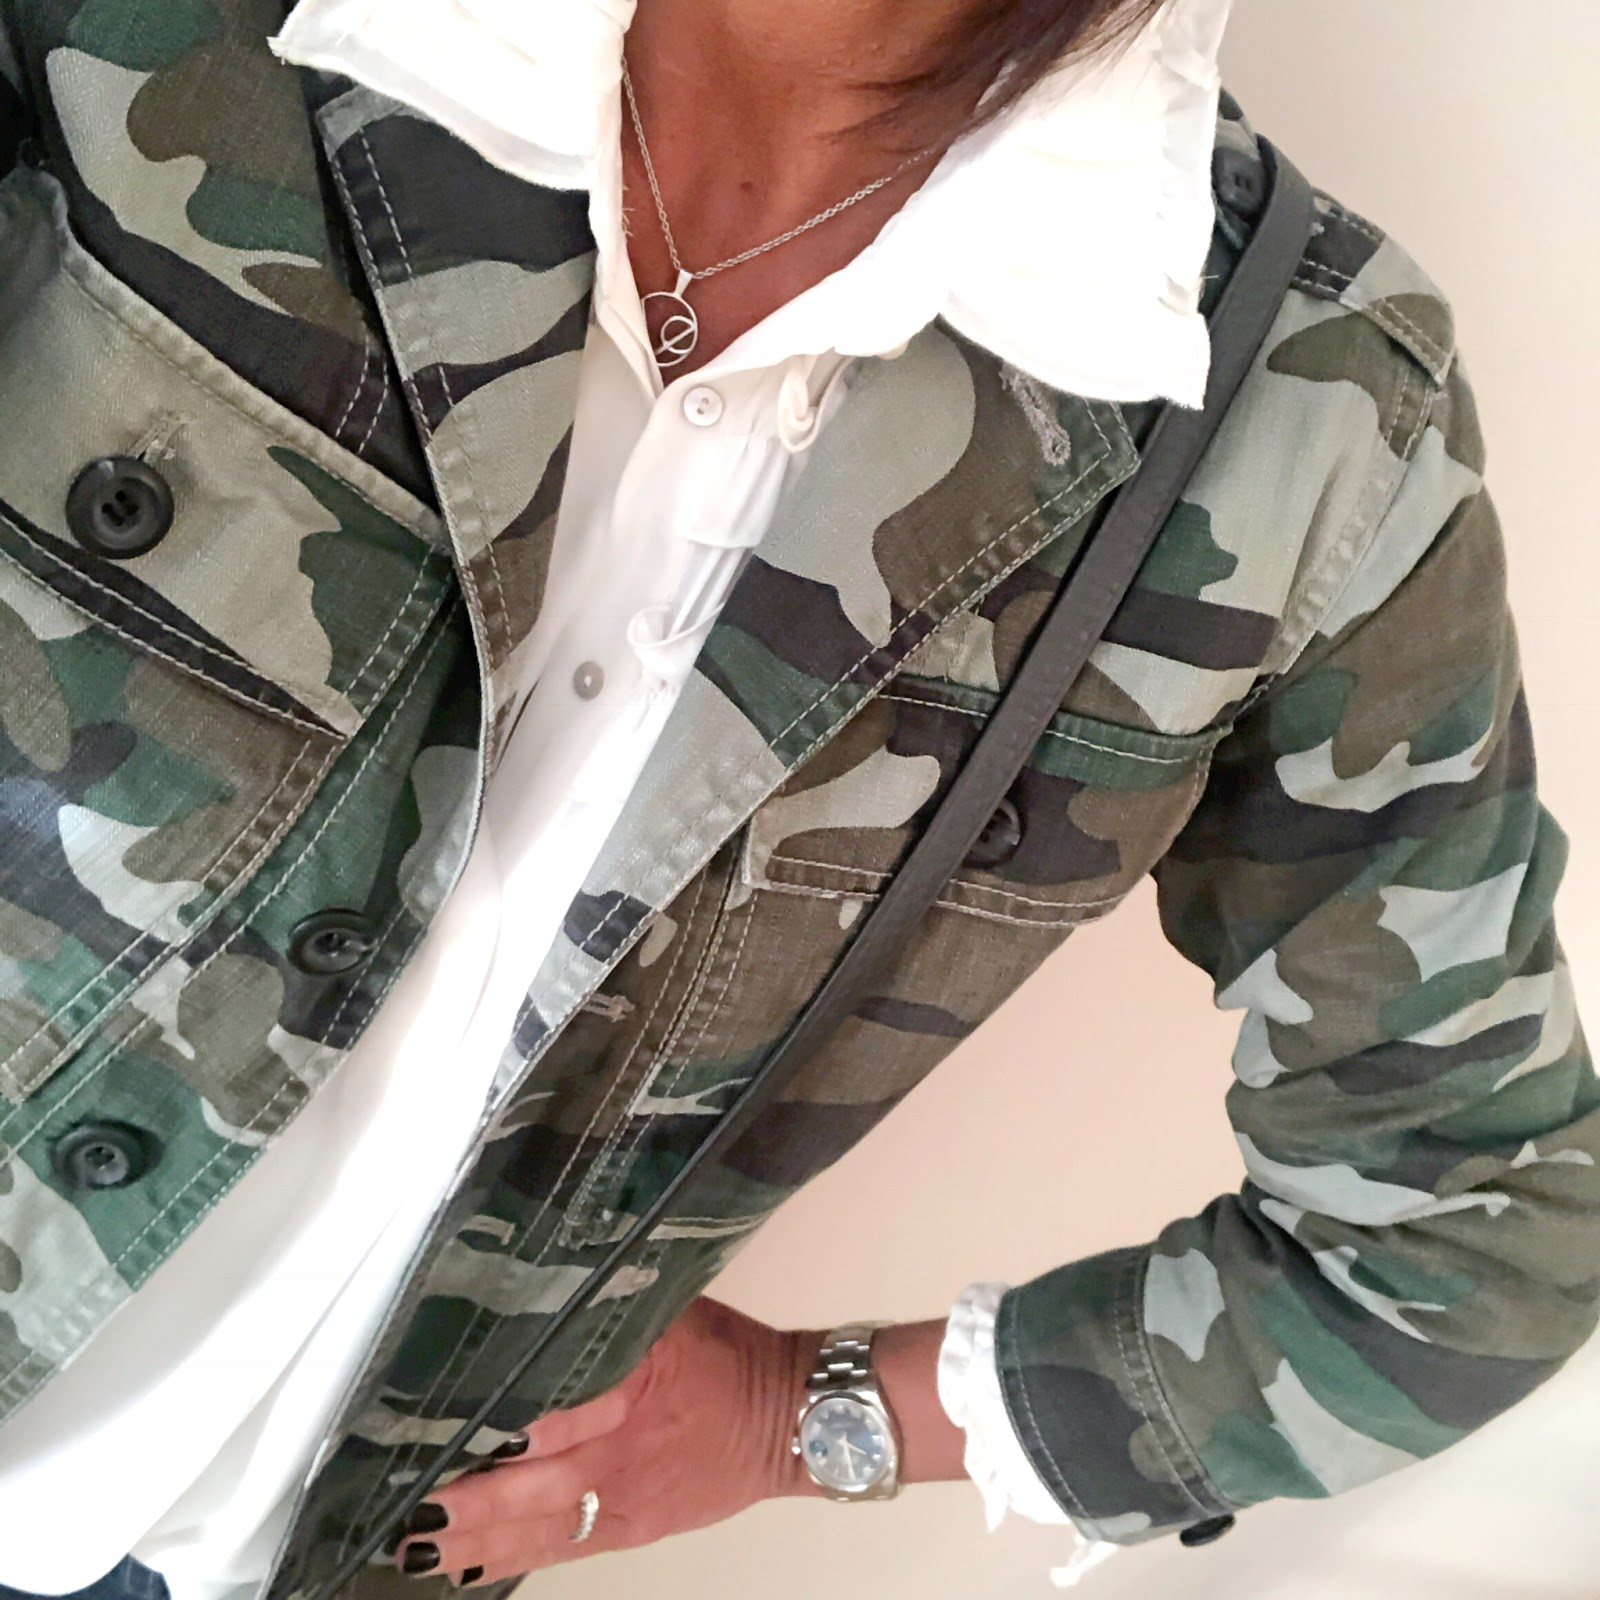 my midlife fashion, village england misterton chain pendant necklace, zara frill detail blouse, j crew camouflage utility shirt jacket, hush turn up boyfriend jeans, j crew leather across body bag, j crew metallic block heel scallop edge shoe